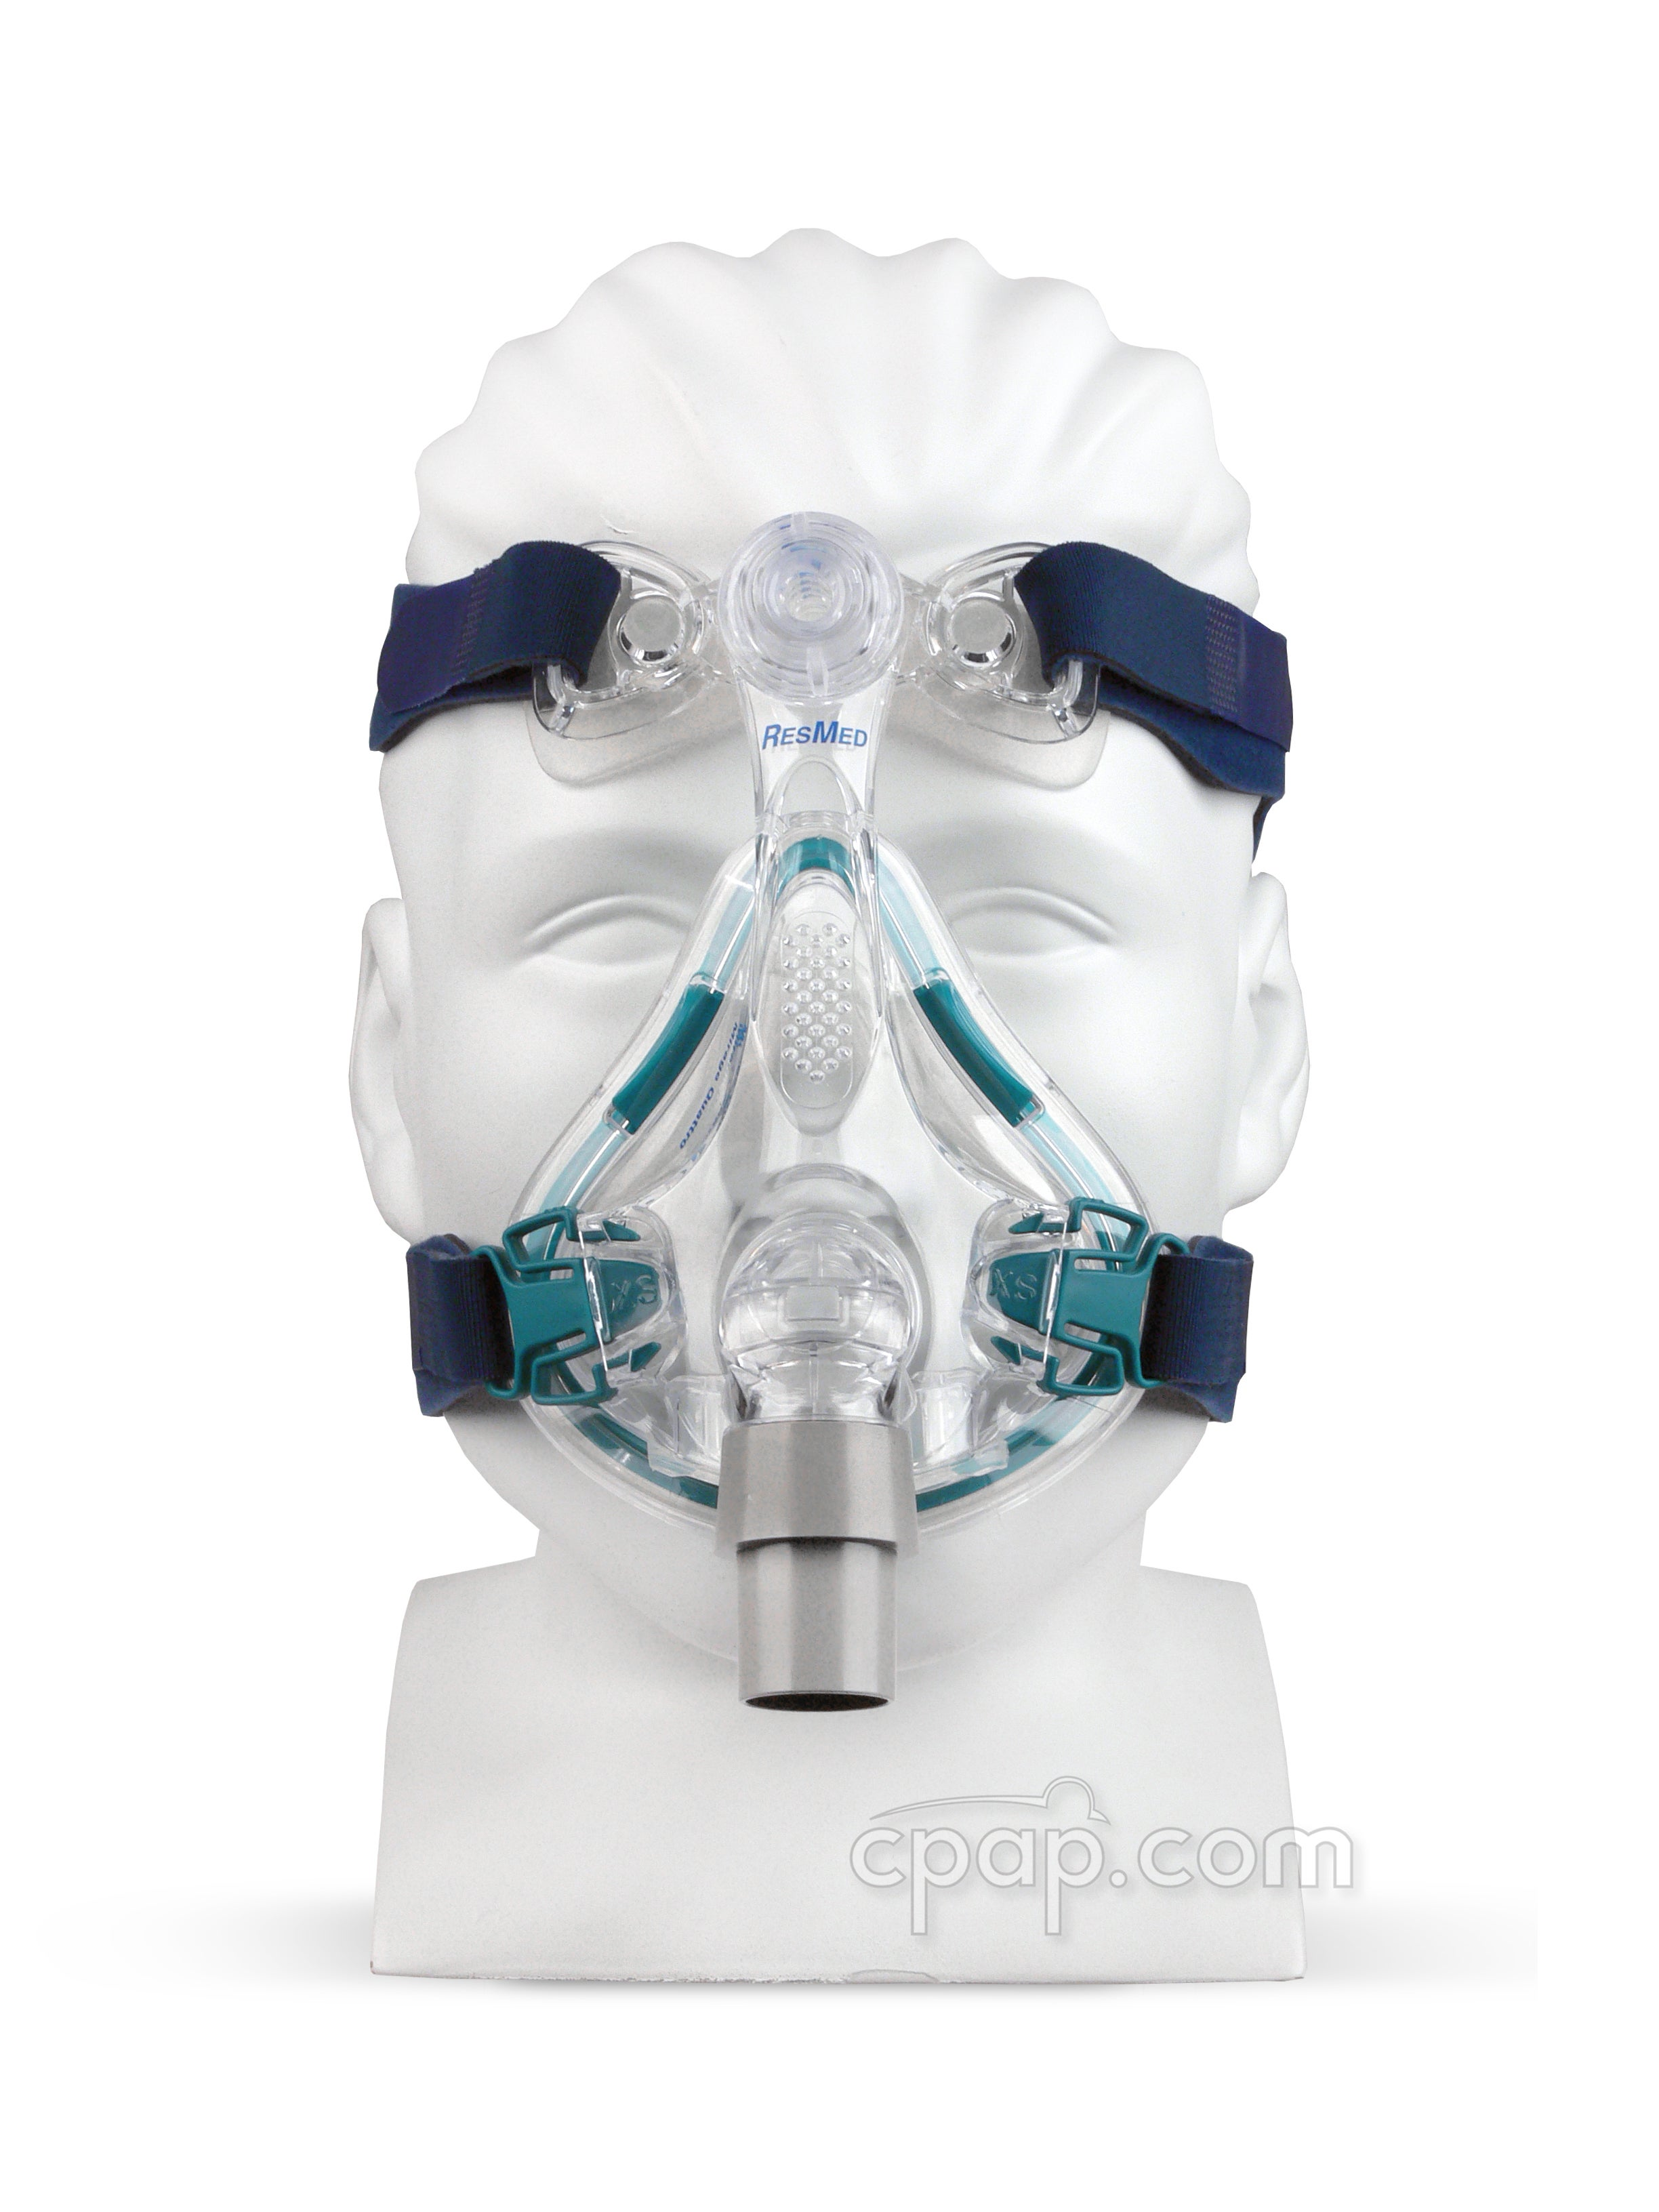 Quattro Full Face - Front - Shown on Mannequin (Not Included)